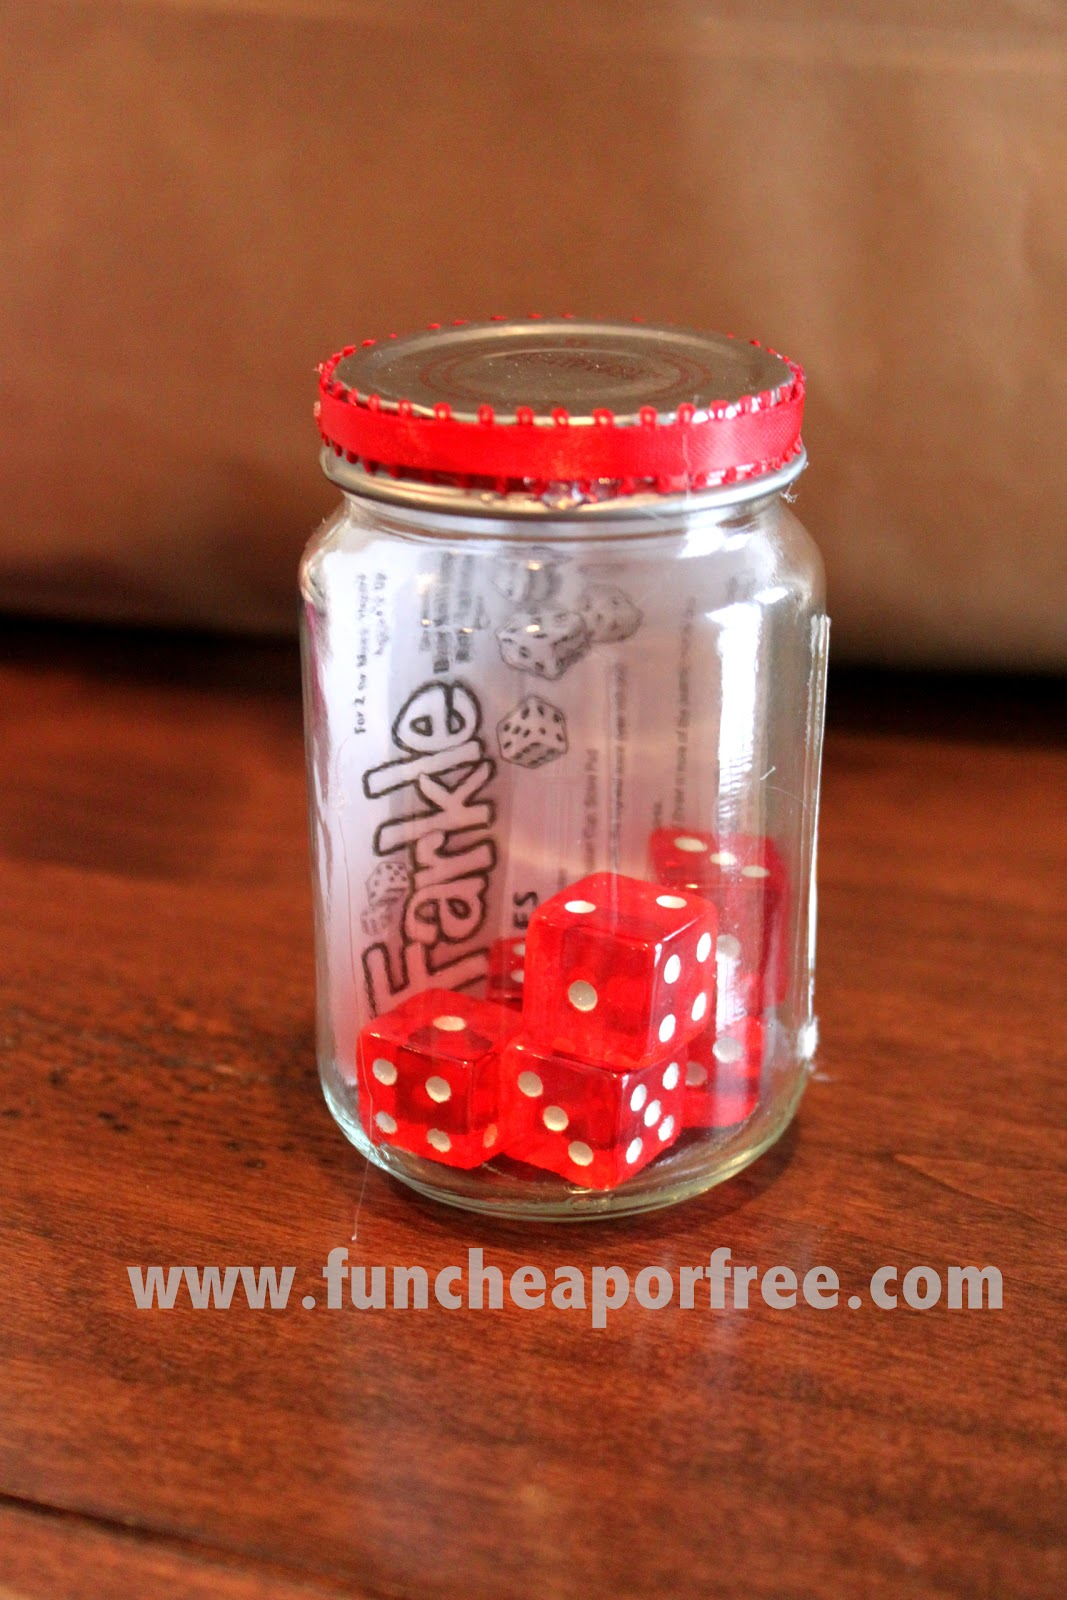 Neighbor Gift Ideas + DIY Travel Farkle Game - Fun Cheap or Free